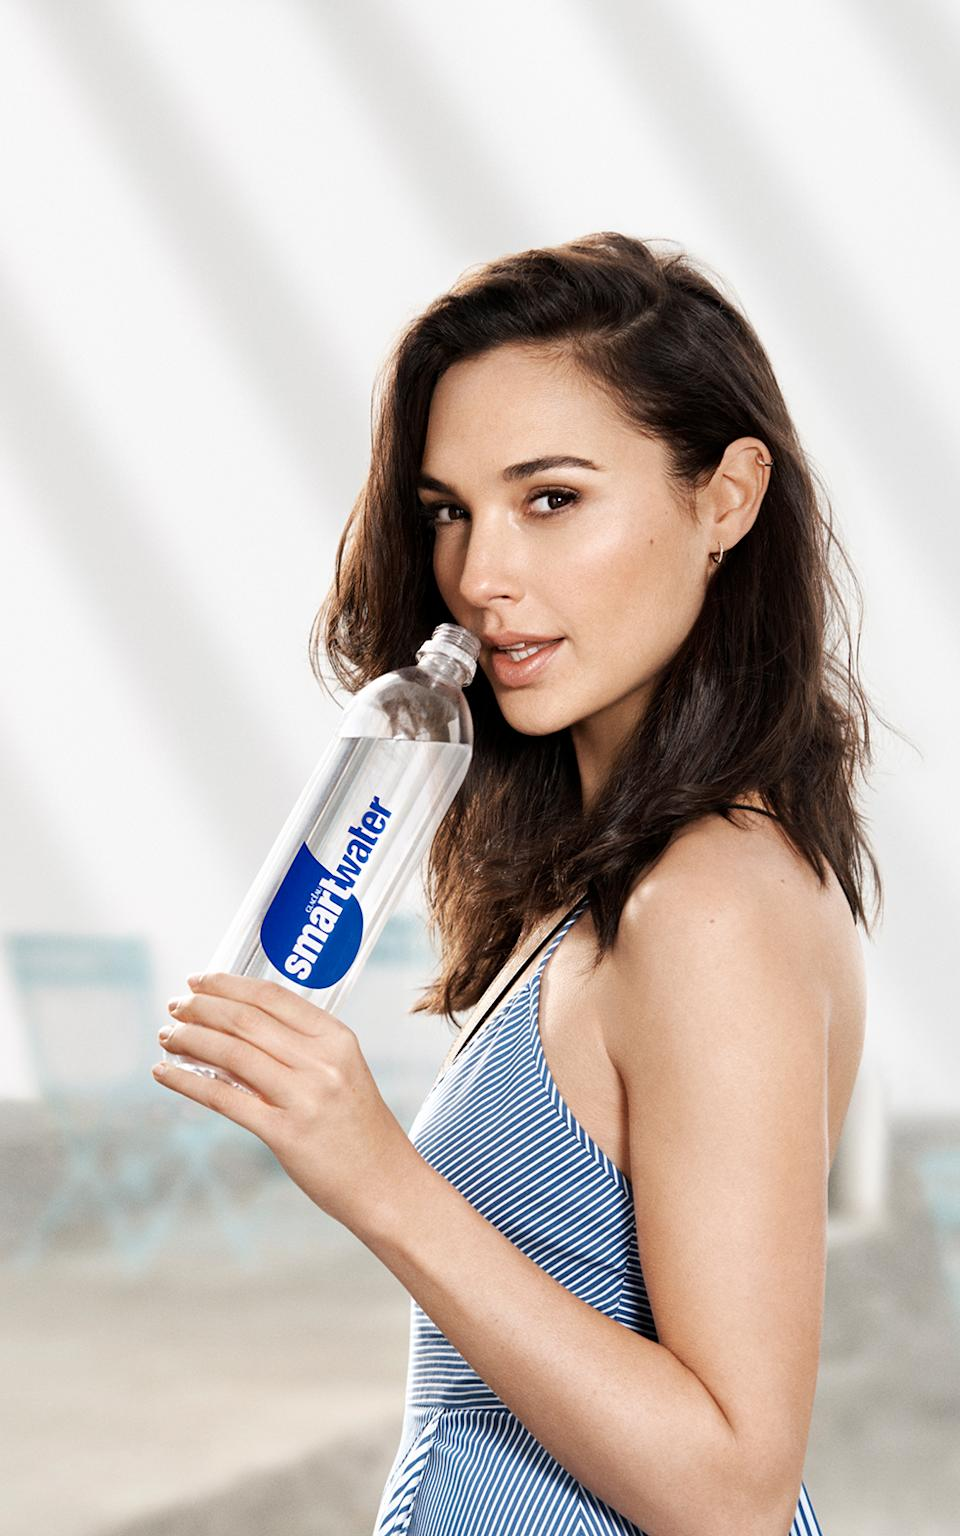 Image courtesy of Smartwater.